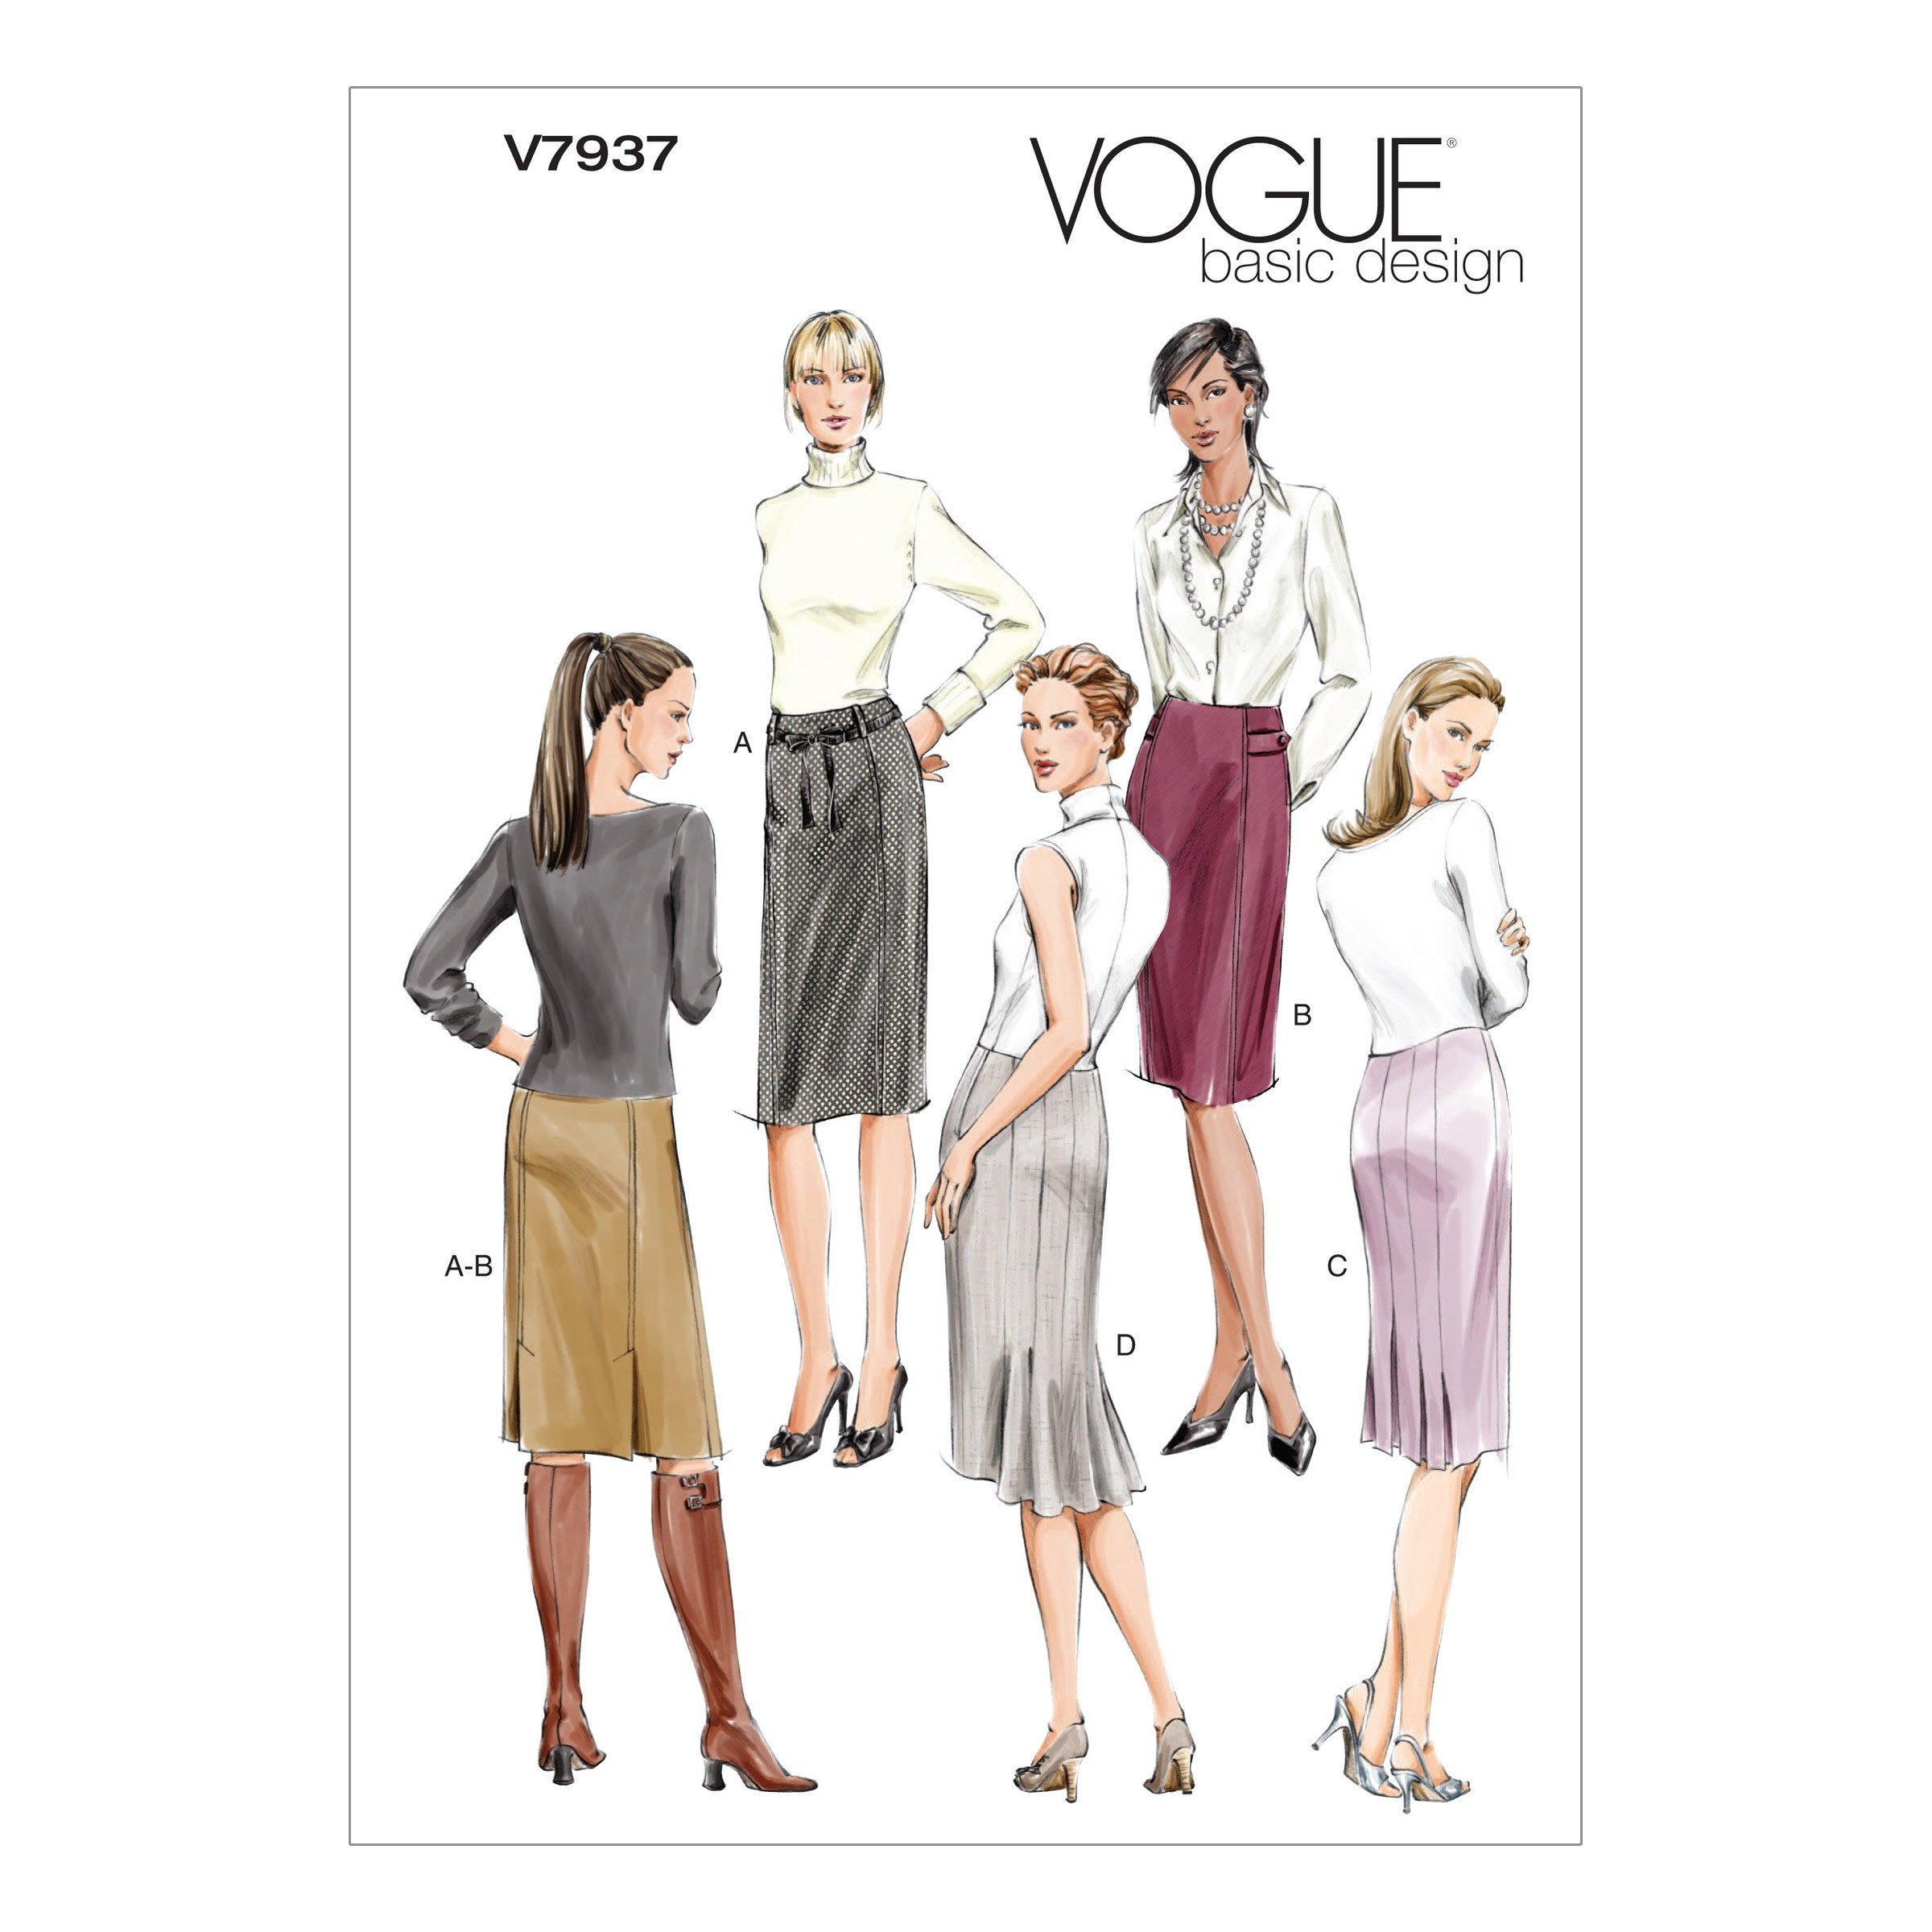 Vogue Sewing Pattern V7937 Women's Skirts with Pleat and Seam Options